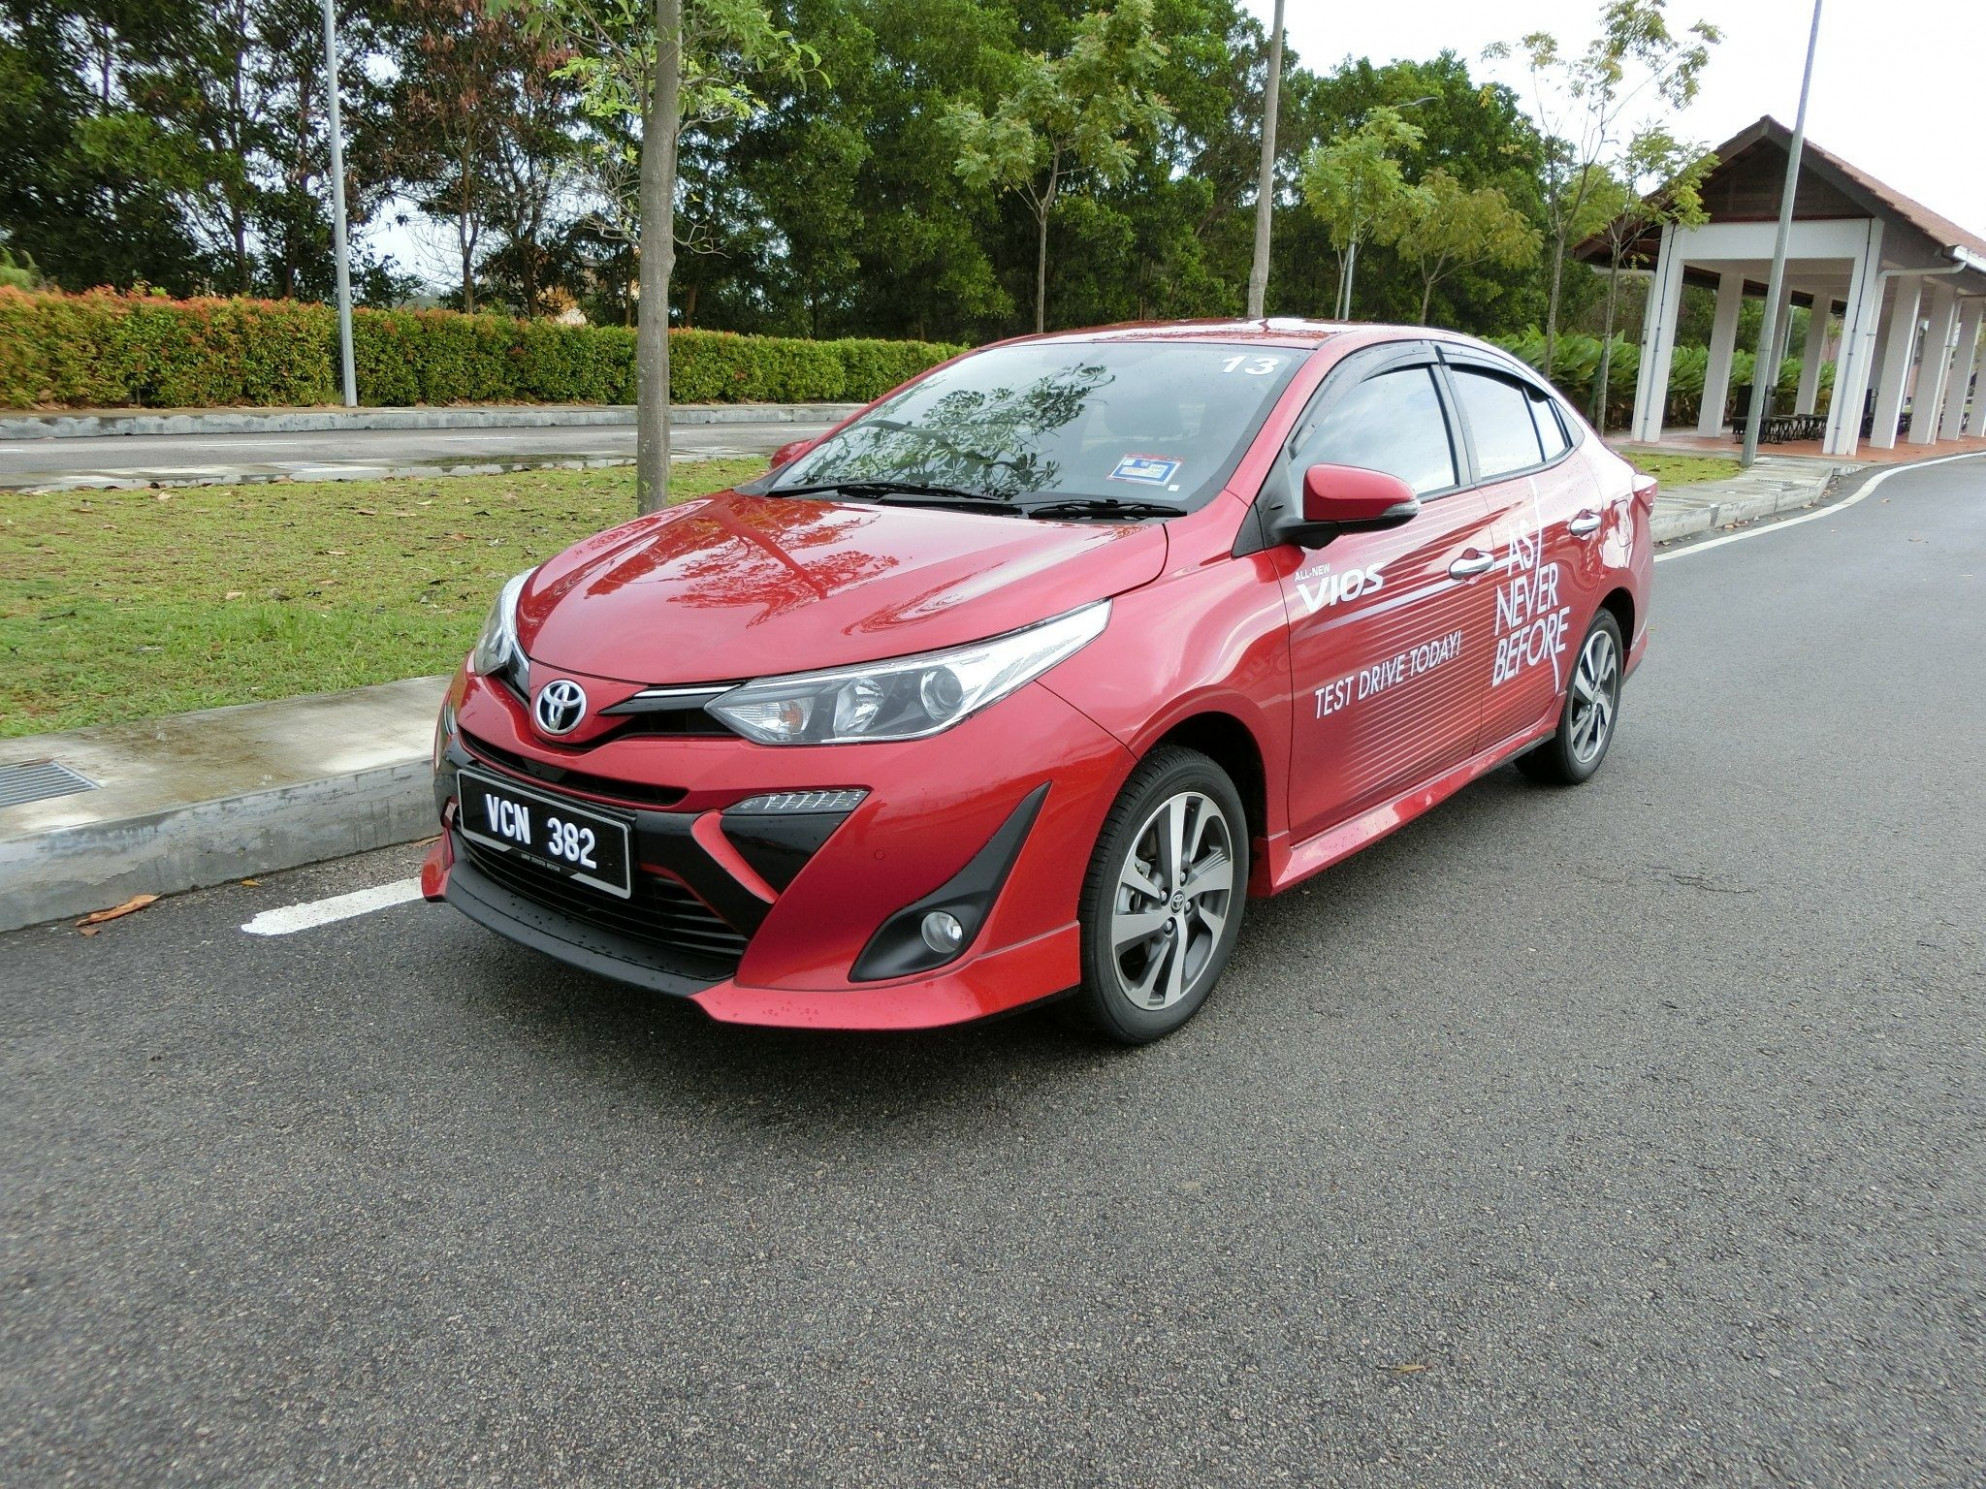 Toyota Vios 7 Malaysia Price Review and Specs | Toyota vios - toyota vios 2020